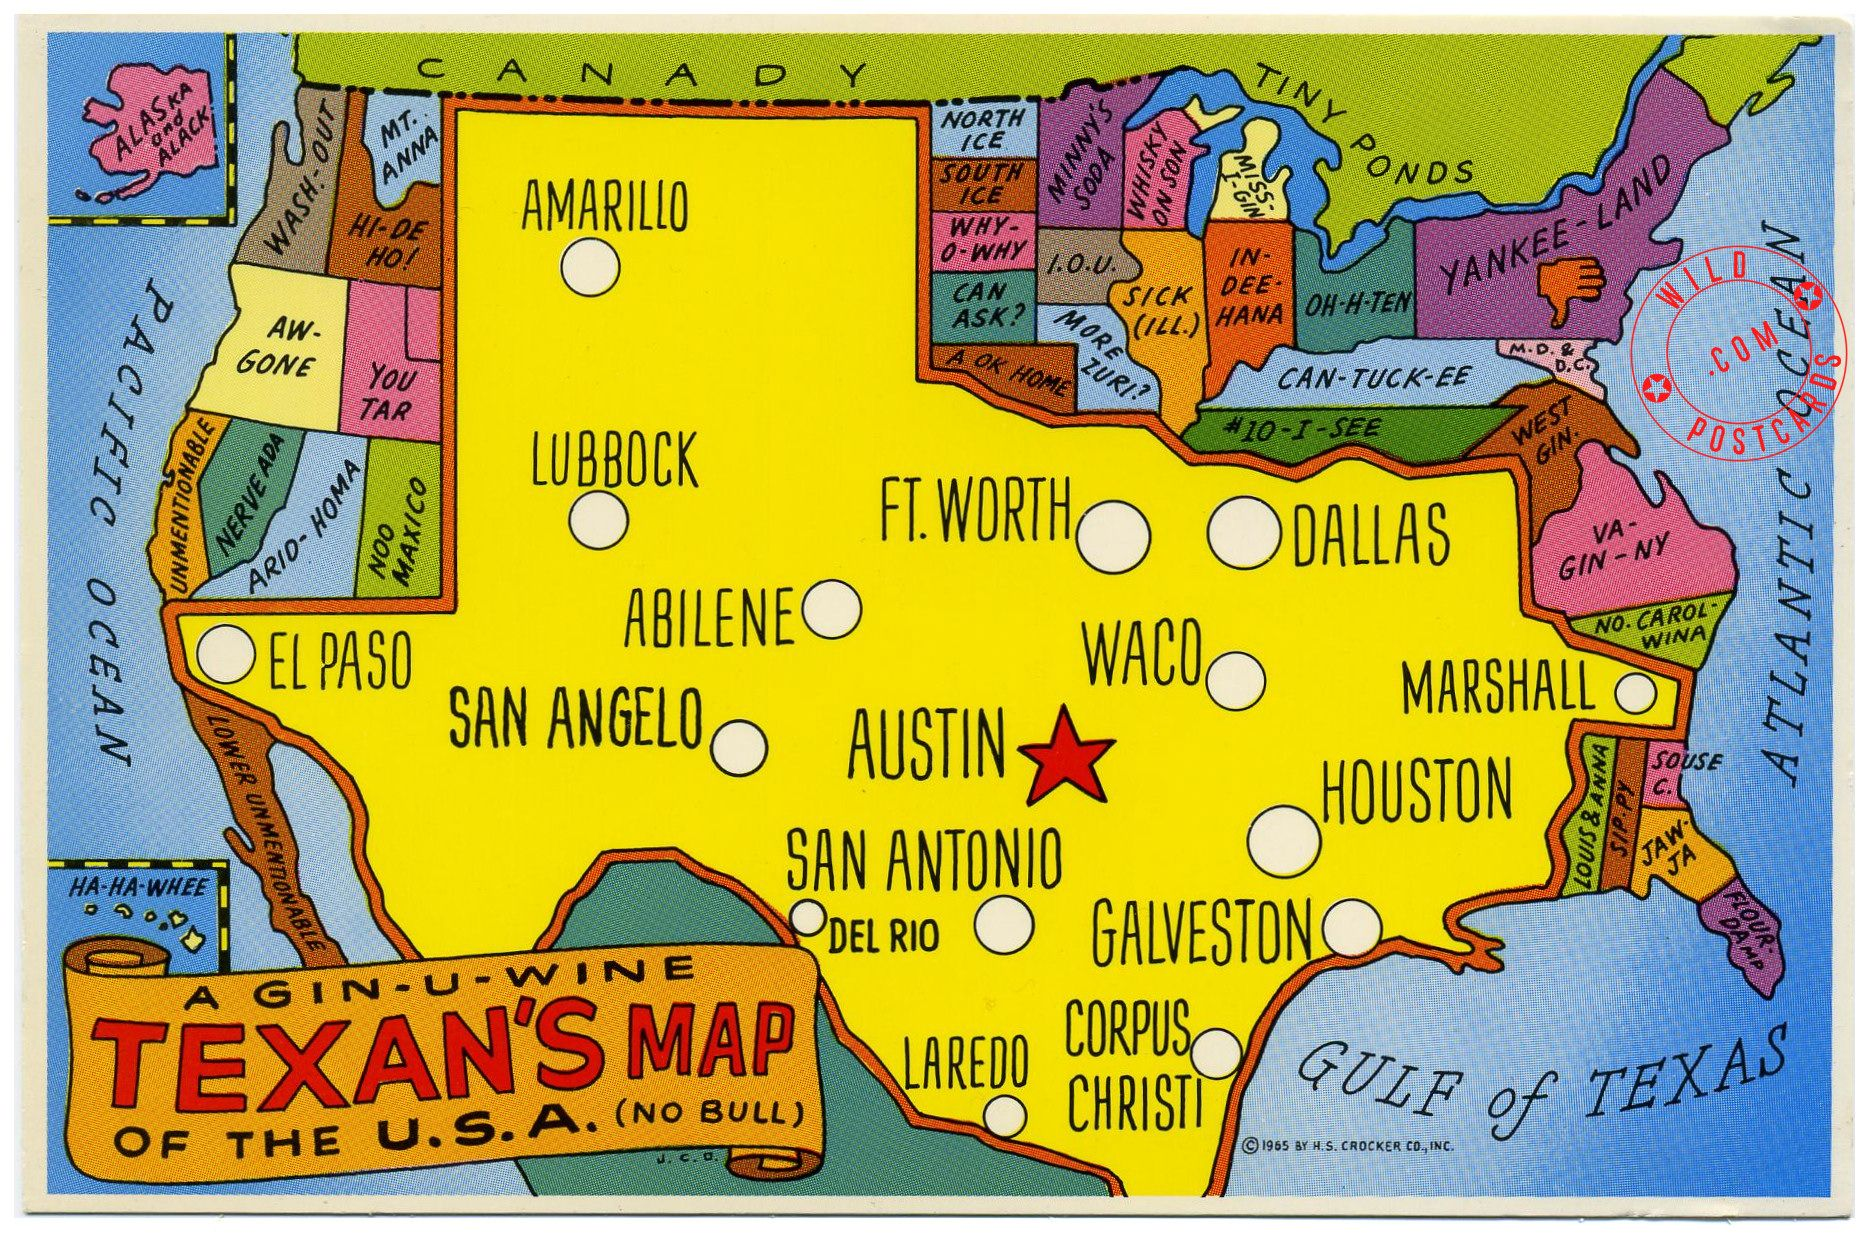 Funny Texas Maps Texas And West Texas - Texas map of usa